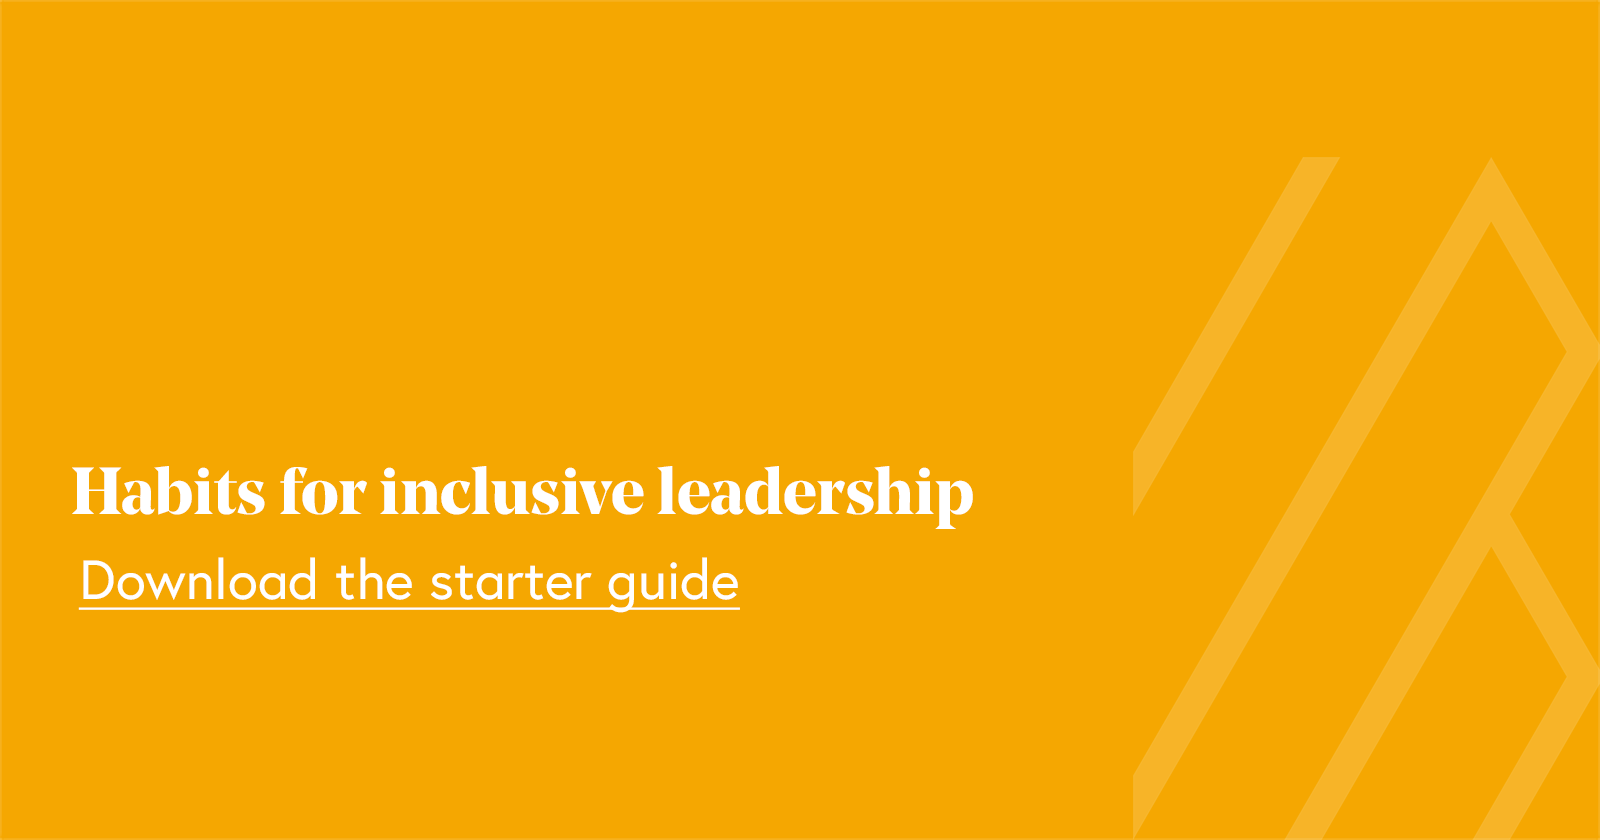 How to coach inclusive leadership habits